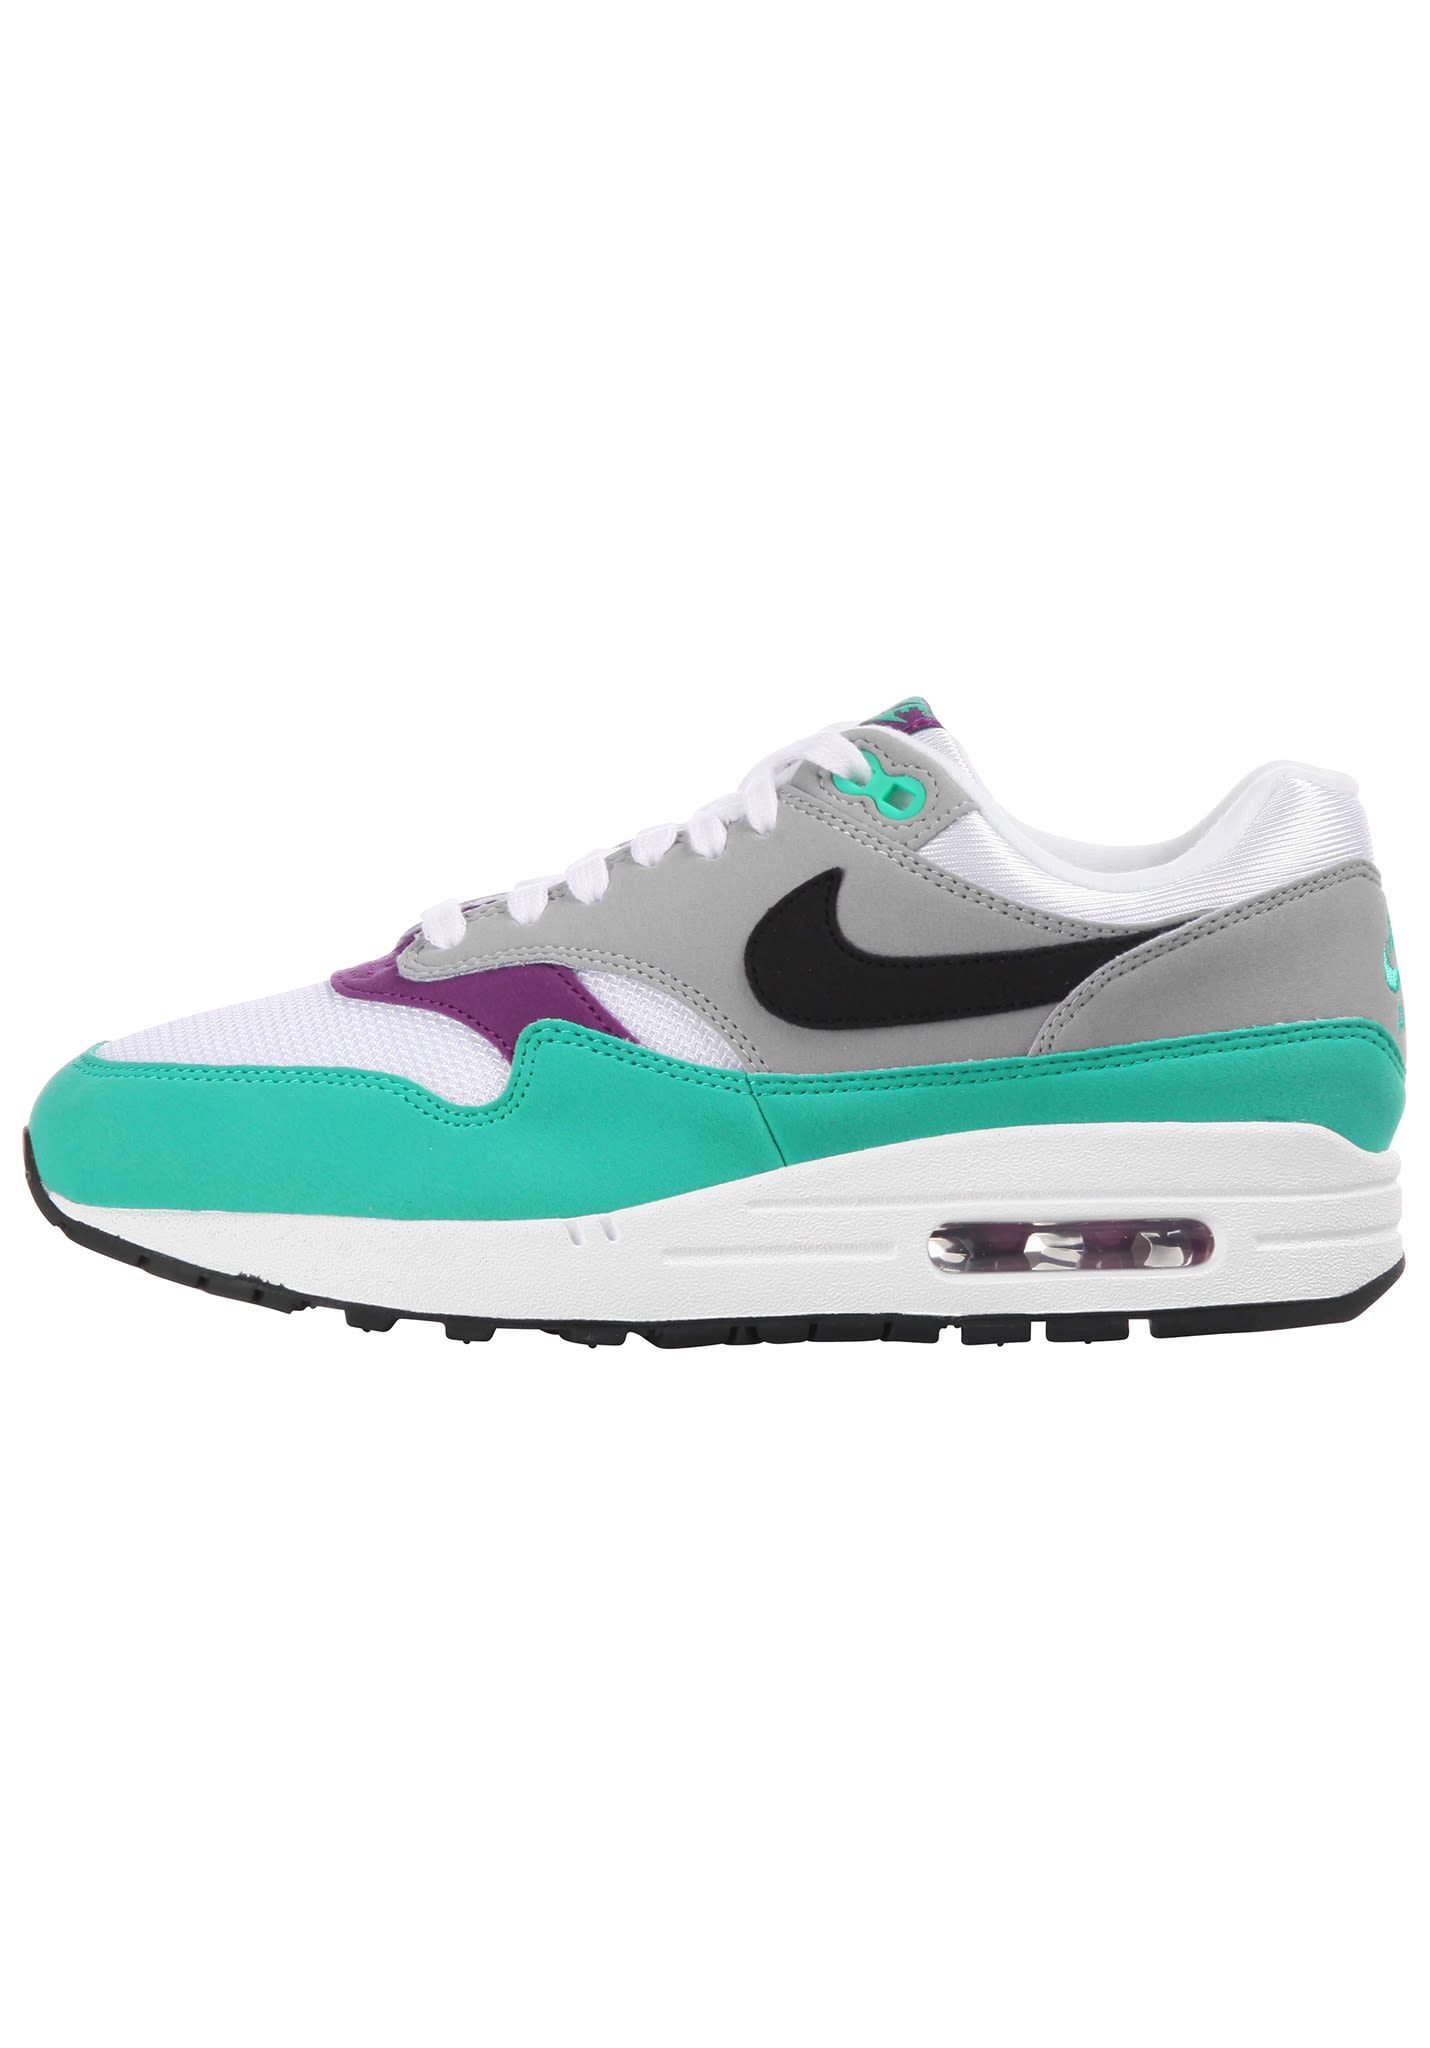 9d12389acbda NIKE SPORTSWEAR Air Max 1 - Sneakers for Women - White - Planet Sports